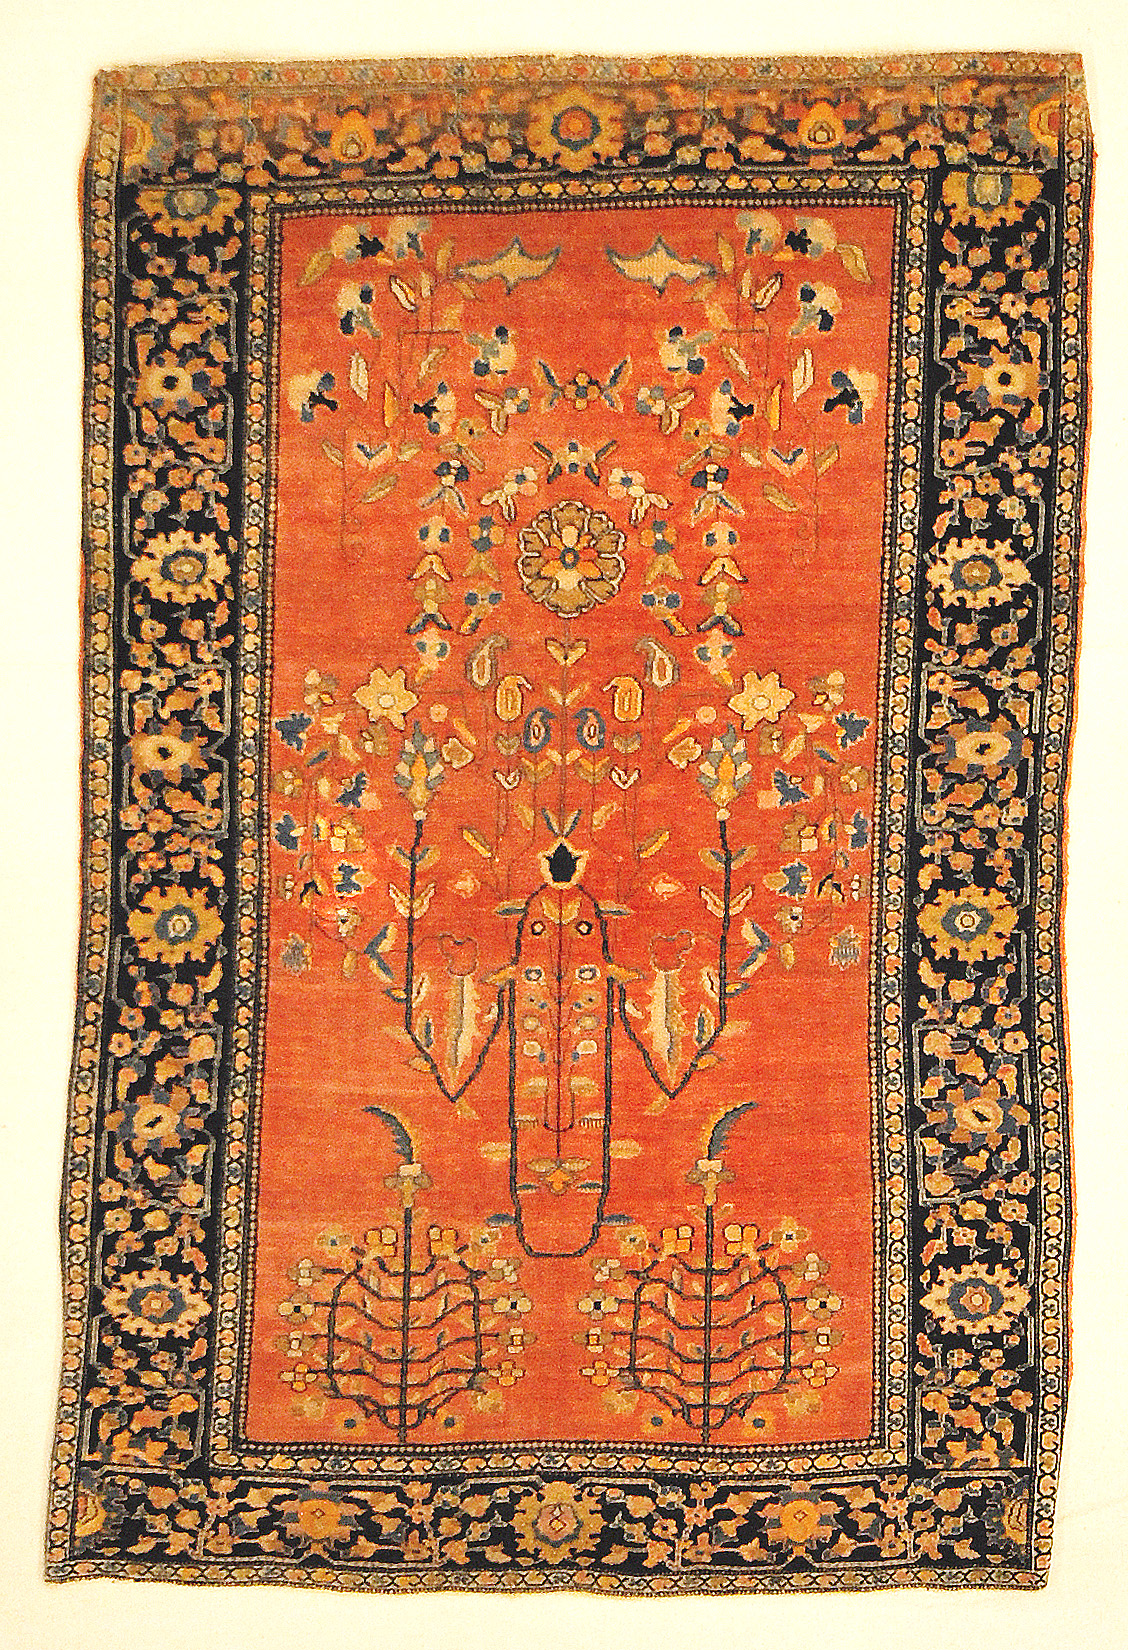 Unique Exemplary Sarouk Farahan Finest of its Kind Genuine Authentic Woven Carpet Art Santa Barbara Design Center Rugs and More